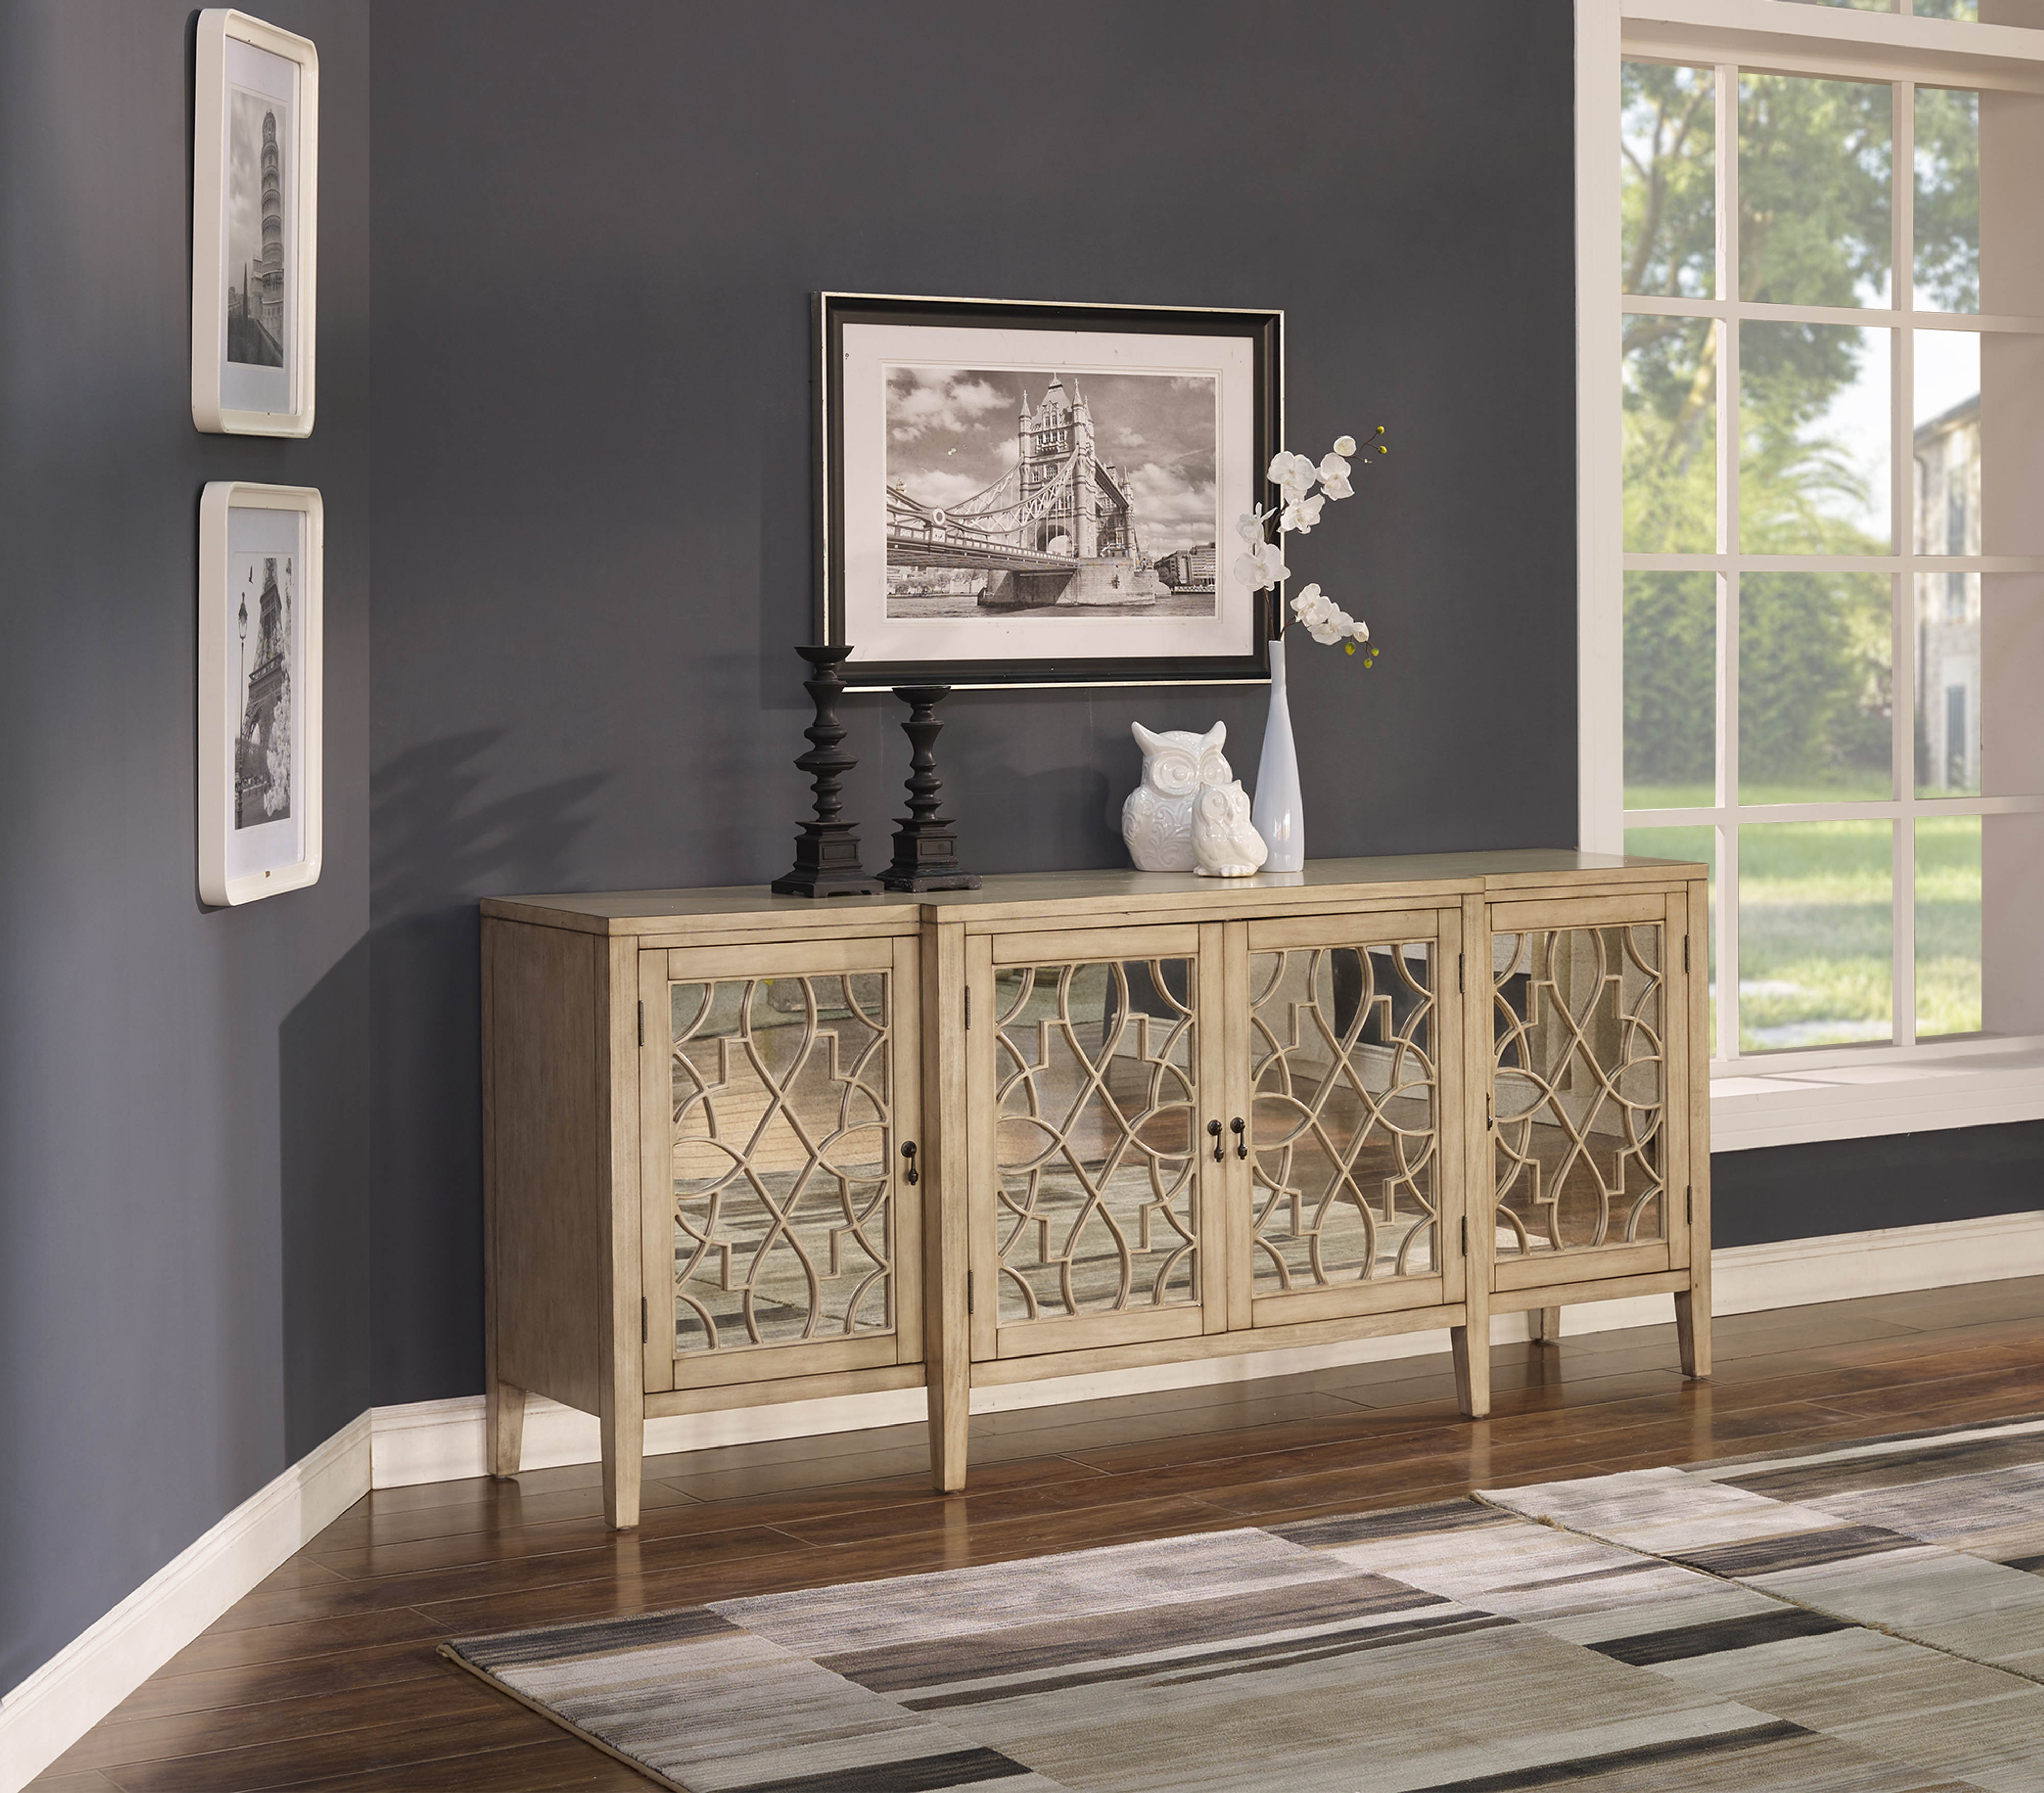 New Classic Furniture Vivienne Bright 4 Doors Credenza The Classy Home